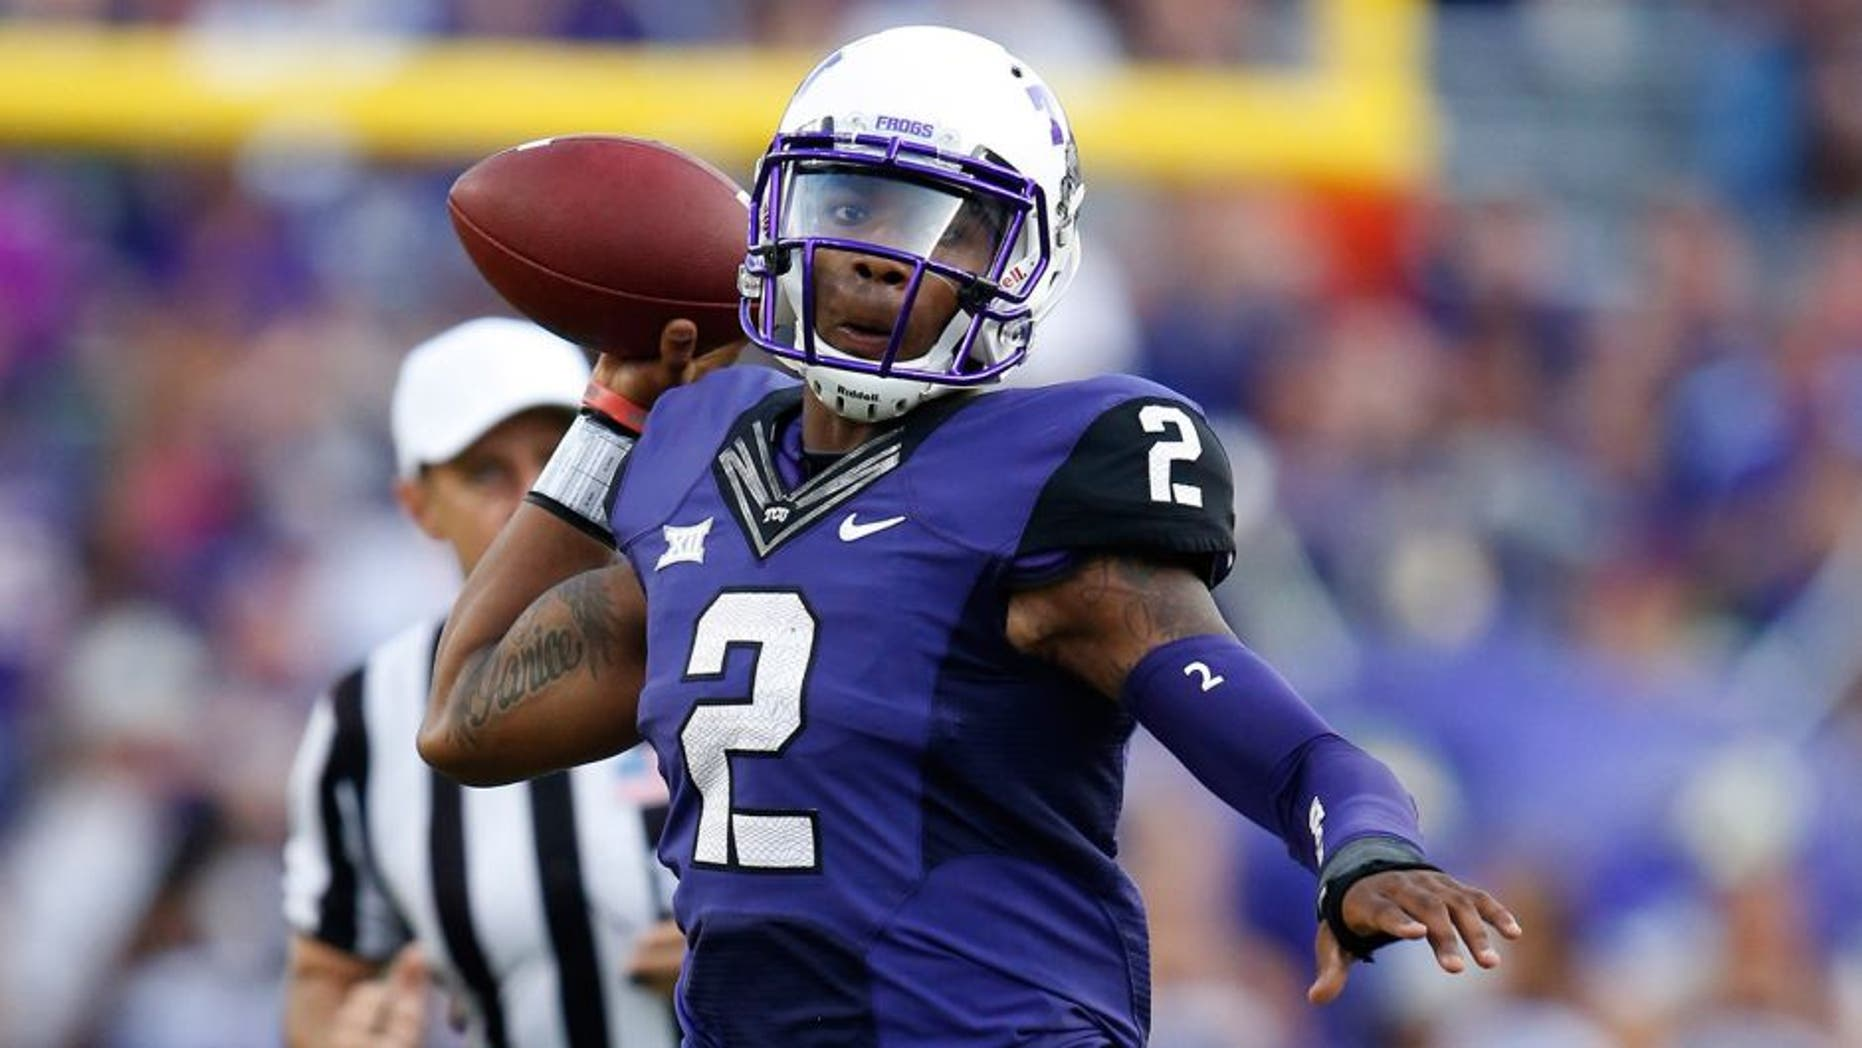 Oct 18, 2014; Fort Worth, TX, USA; TCU Horned Frogs quarterback Trevone Boykin (2) scrambles out of the pocket against the Oklahoma State Cowboys at Amon G. Carter Stadium. Mandatory Credit: Matthew Emmons-USA TODAY Sports